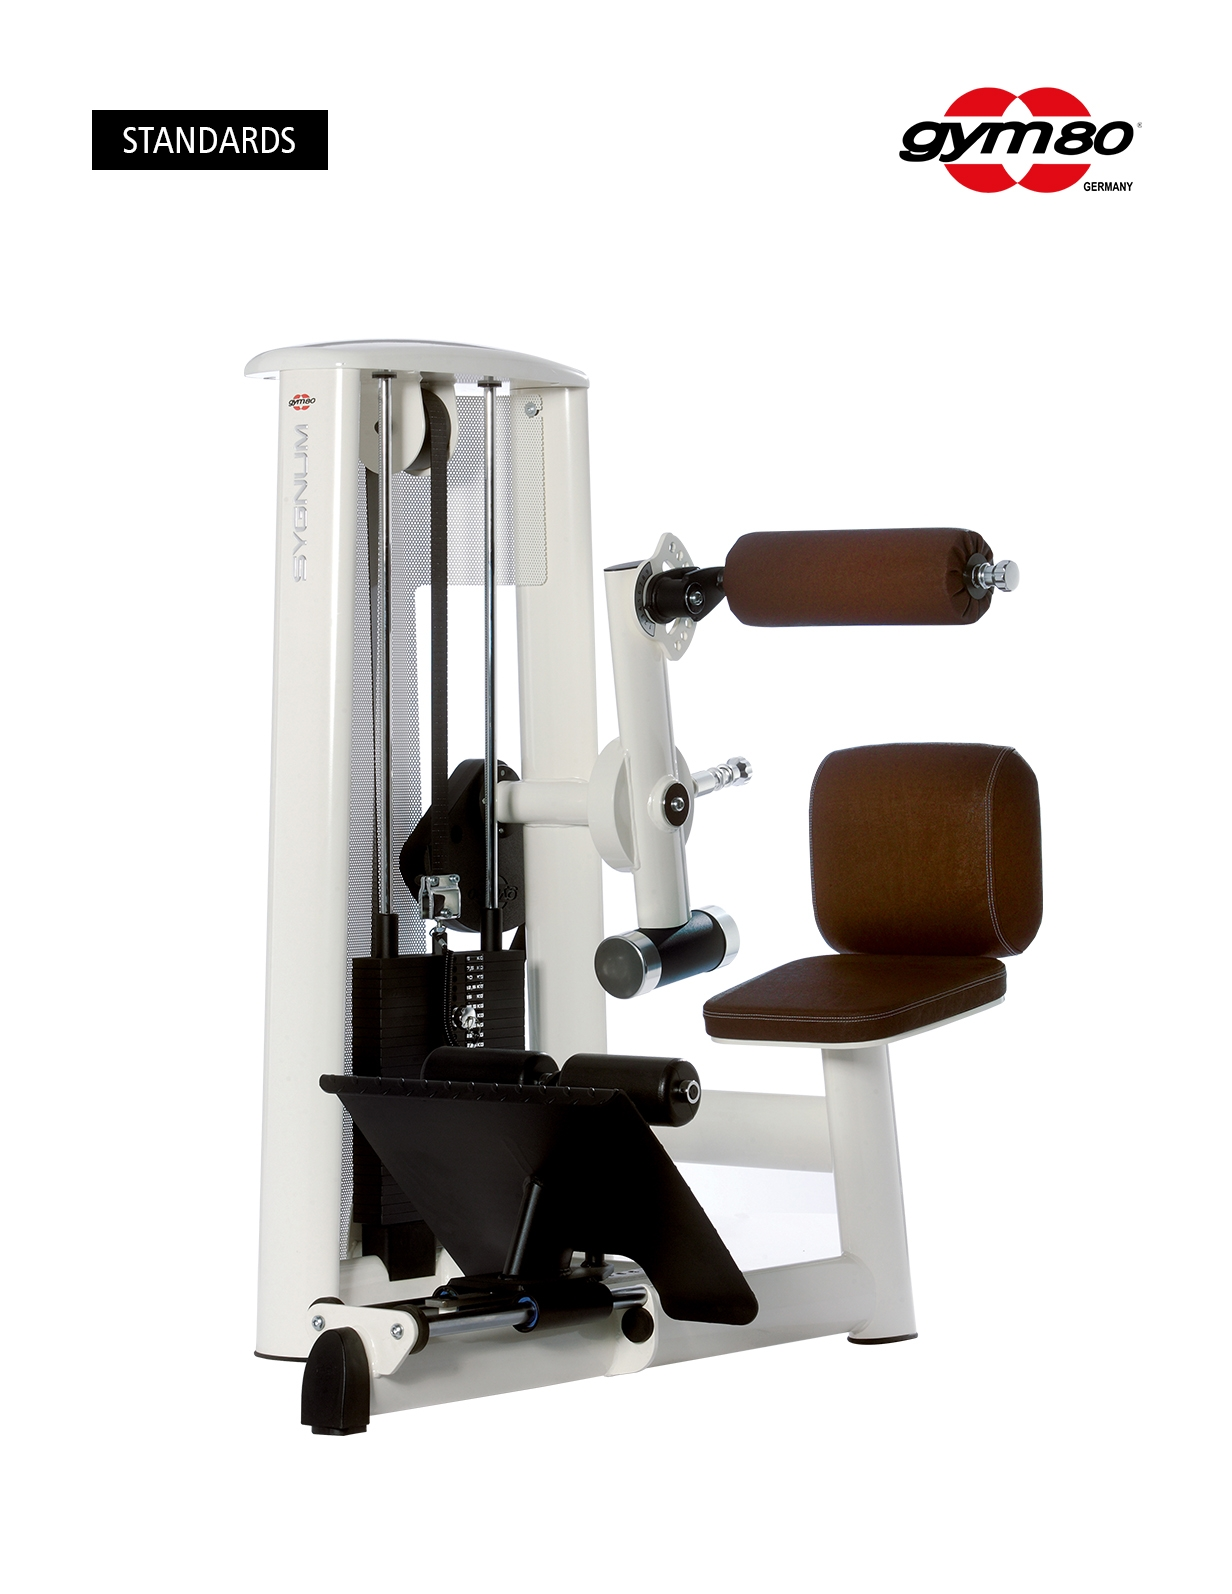 SPECIAL ABDOMINAL MACHINE WITH LEG LENGTH ADJUSTMENT